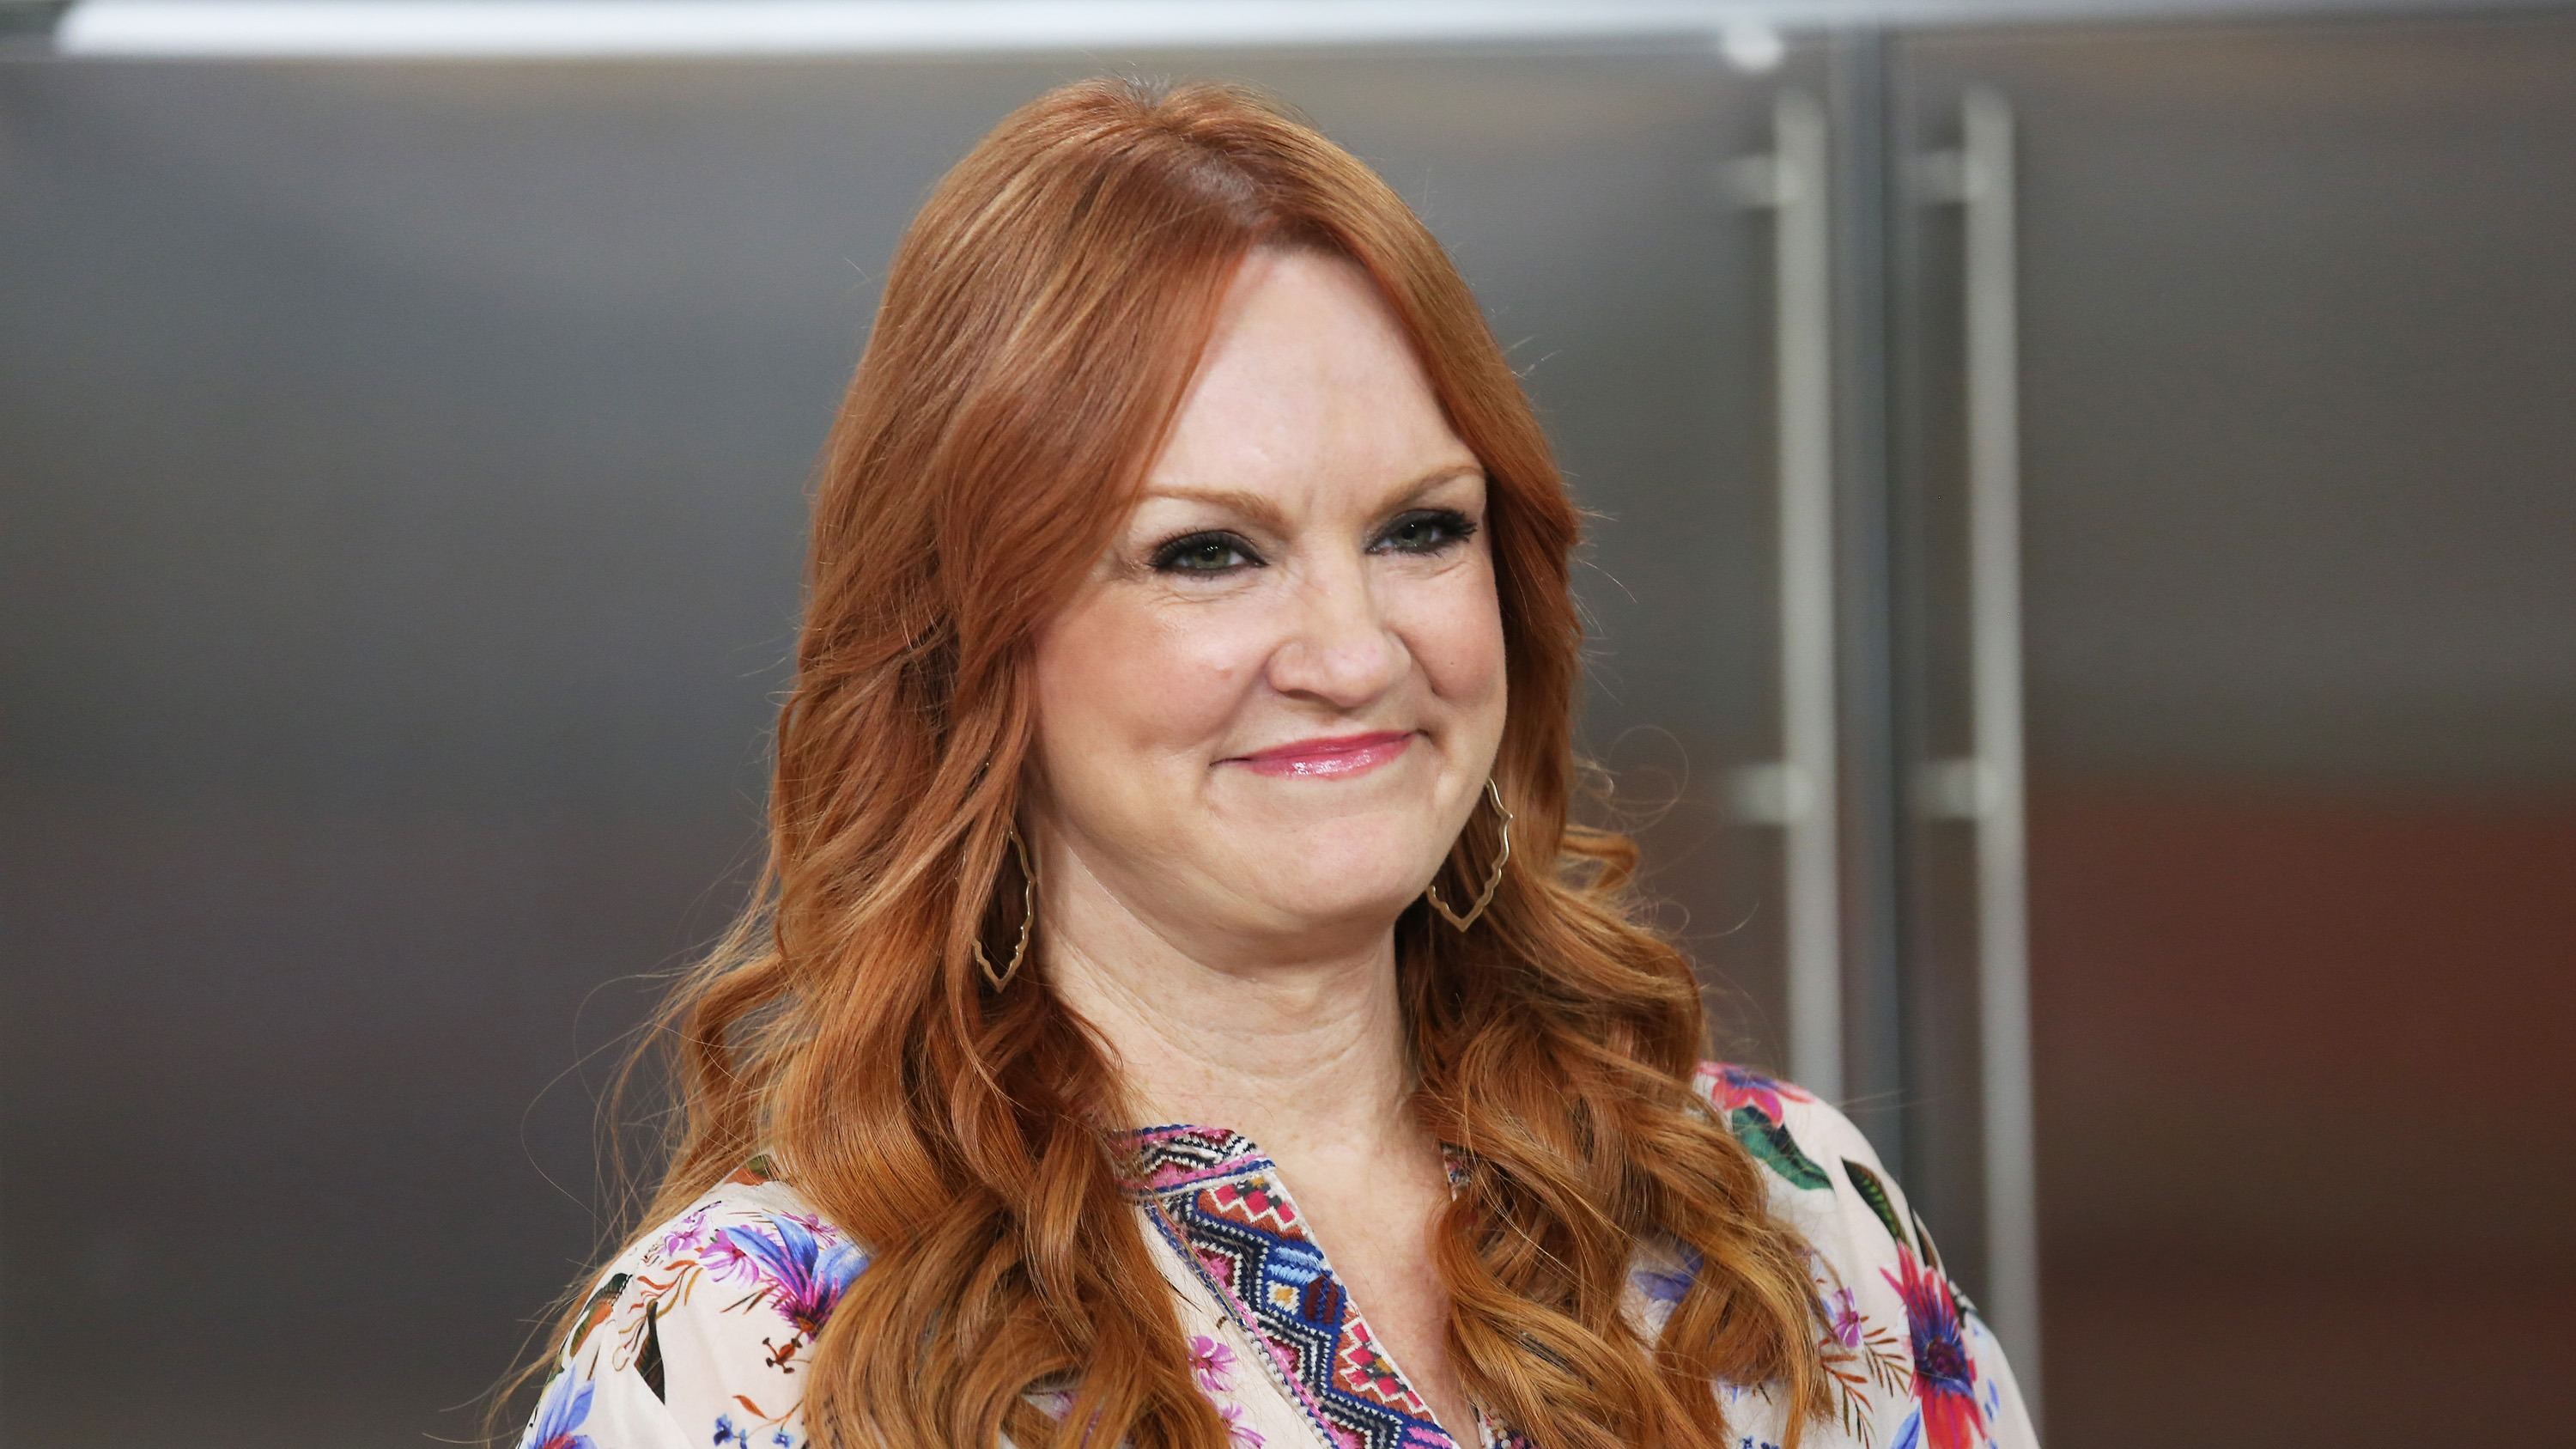 Pioneer Woman Ree Drummond Reveals She Has Lost 50 Pounds And How Her Family Inspired Her